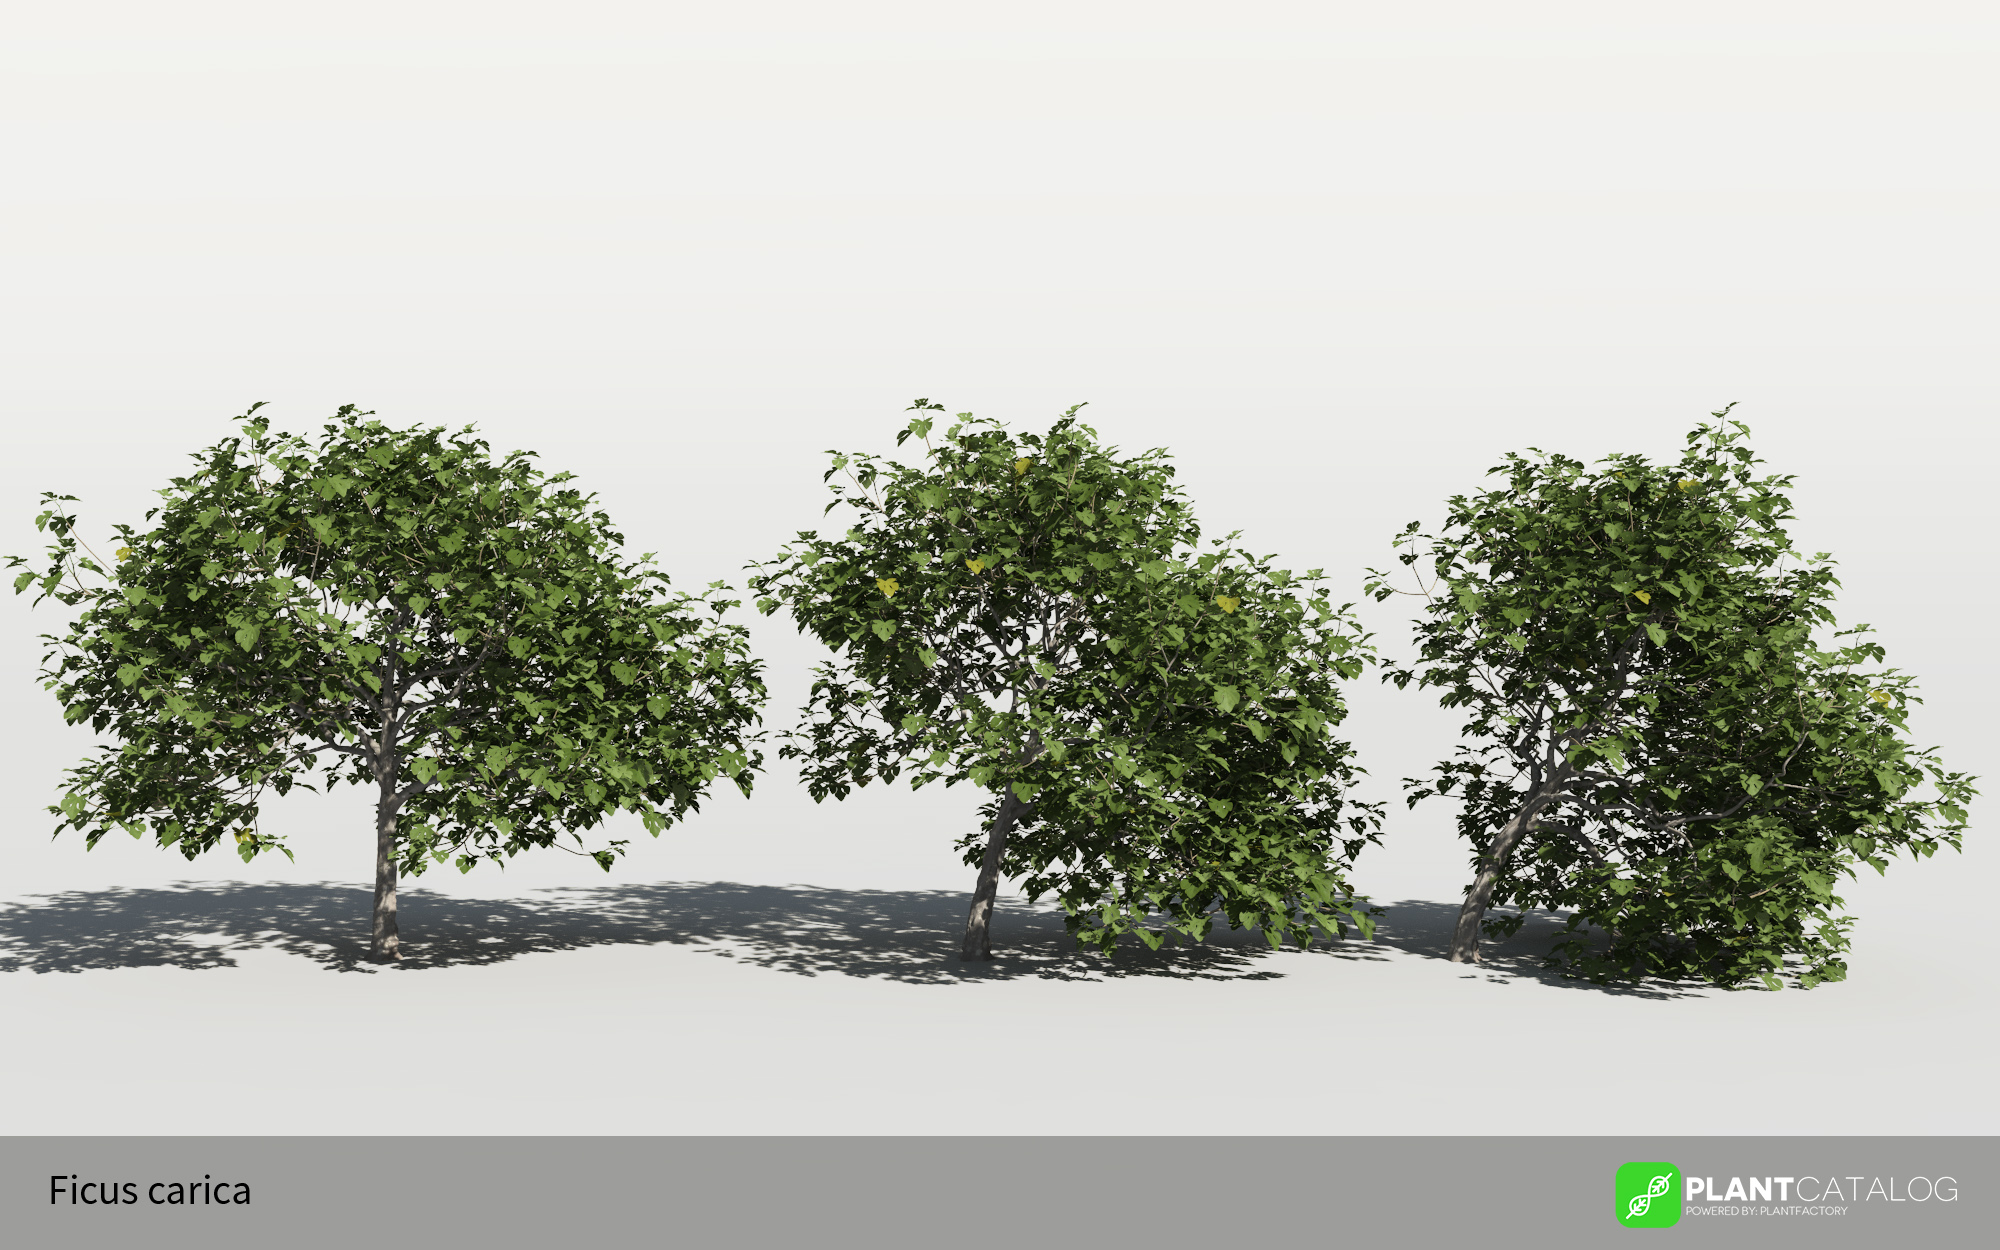 3D model of the Common fig tree - Ficus carica - from the PlantCatalog, rendered in VUE